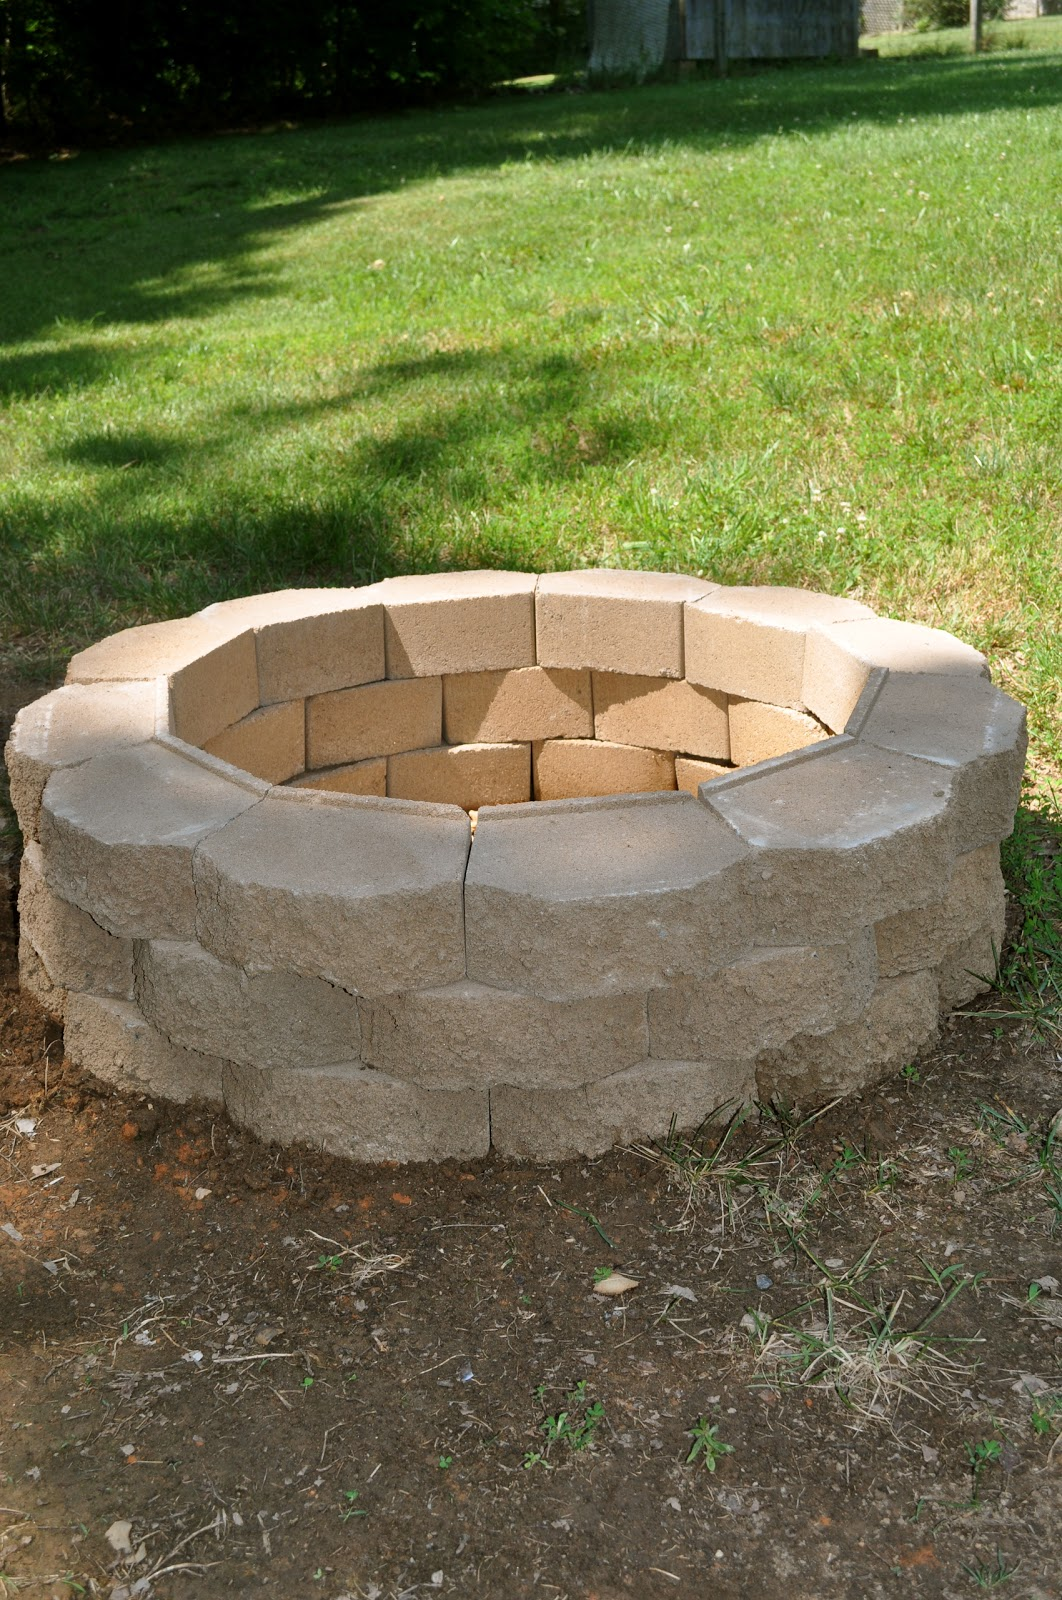 Salty tales diy fire pit - Small backyard fire pit ideas ...